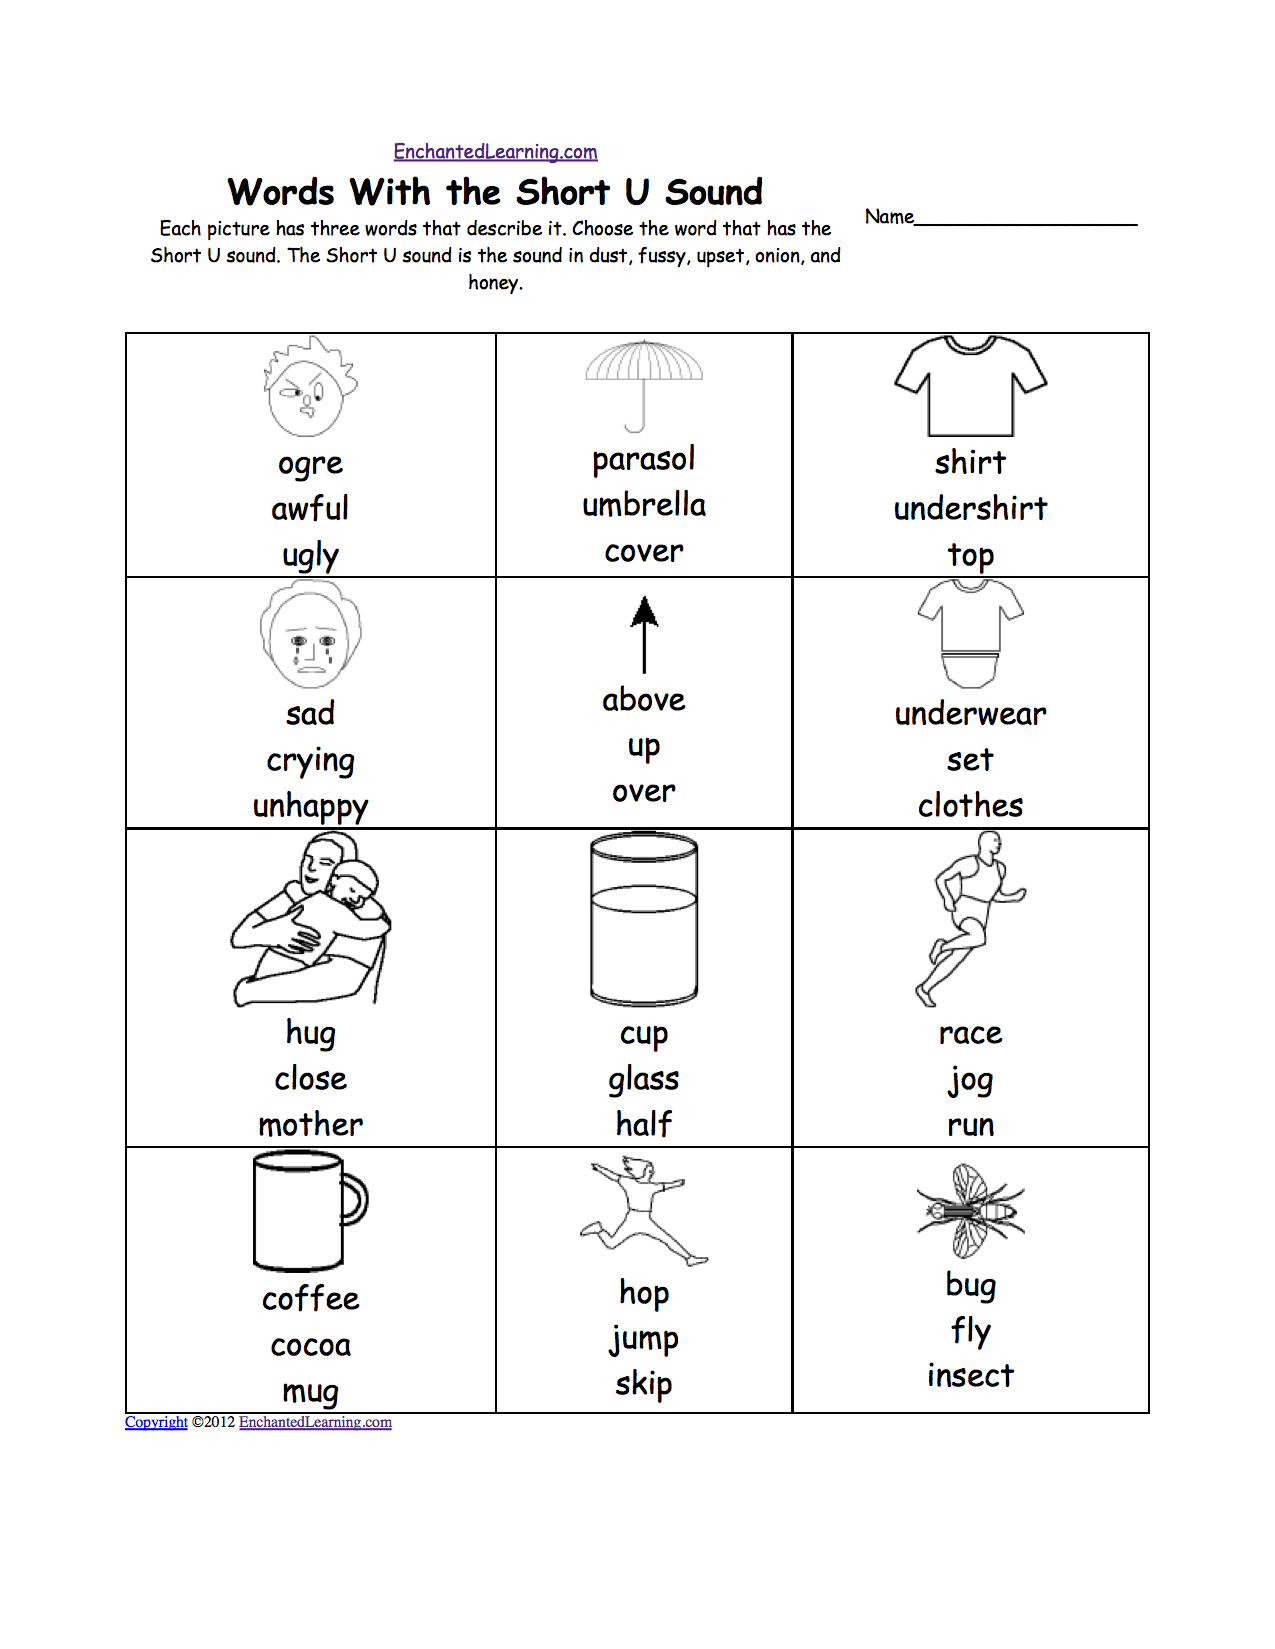 Worksheet Words With Long U Sound short u alphabet activities at enchantedlearning com